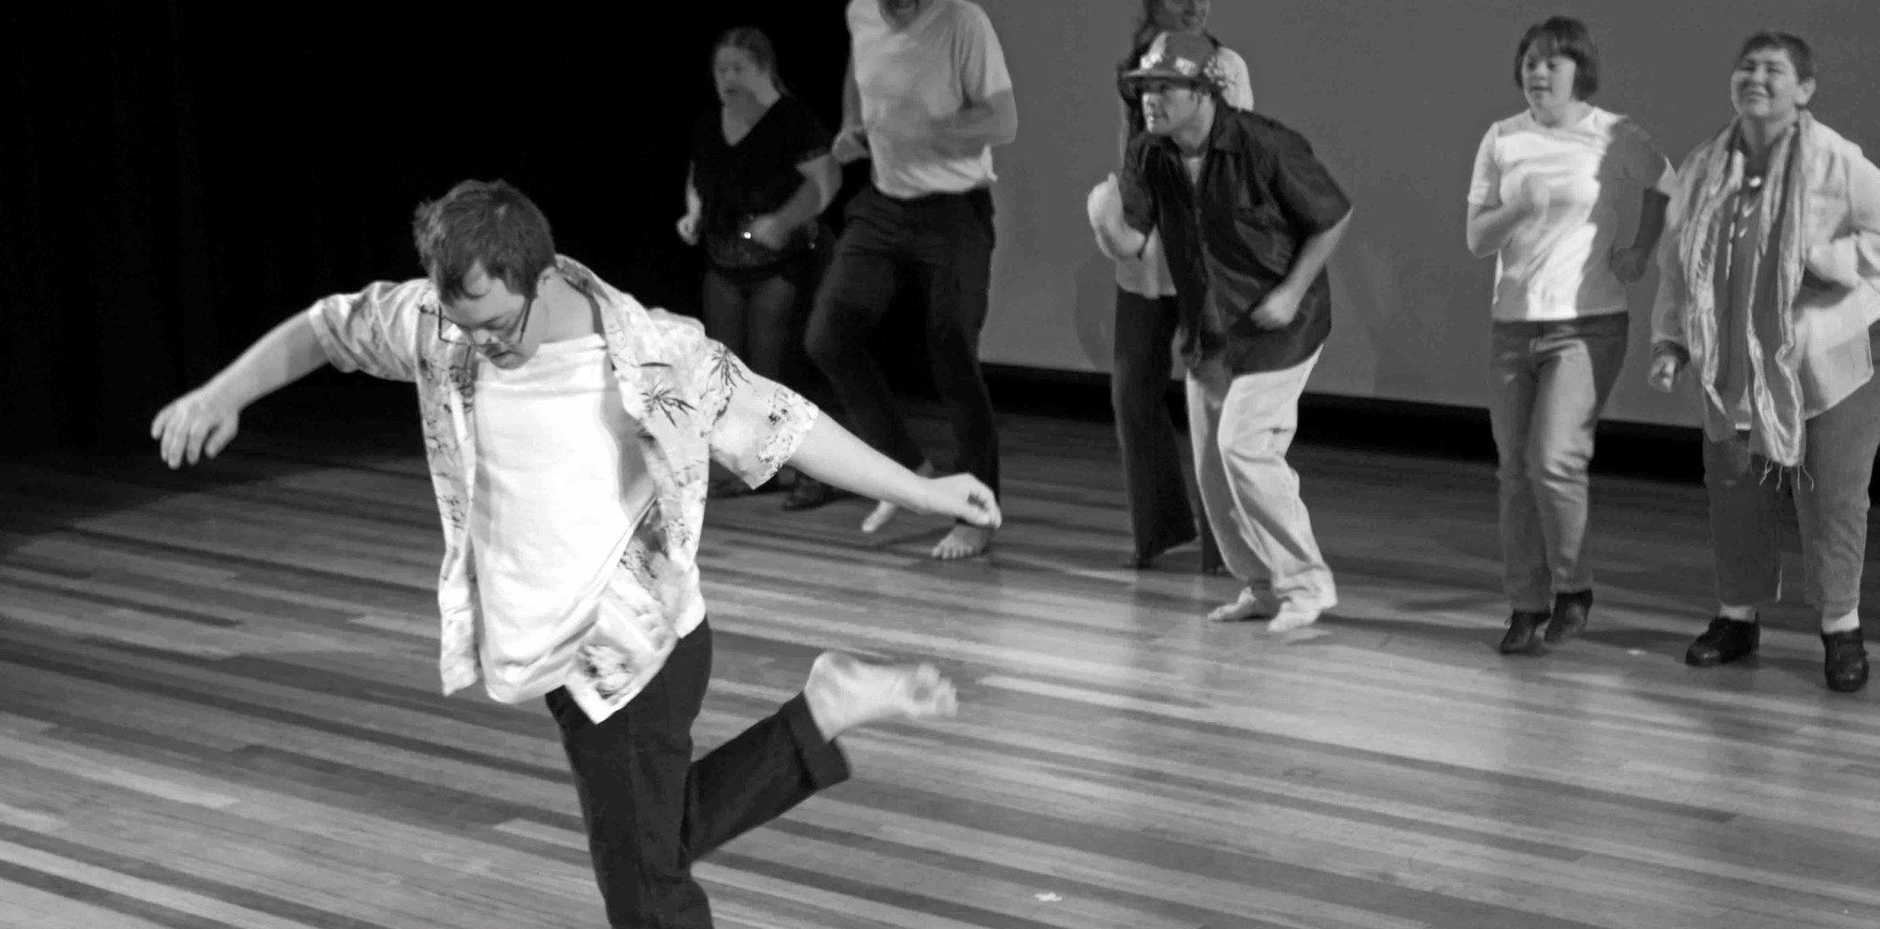 SPRUNG INTO ACTION: The Sprung integrated dance and drama group is back on the stage for 2016.Photo Contributed